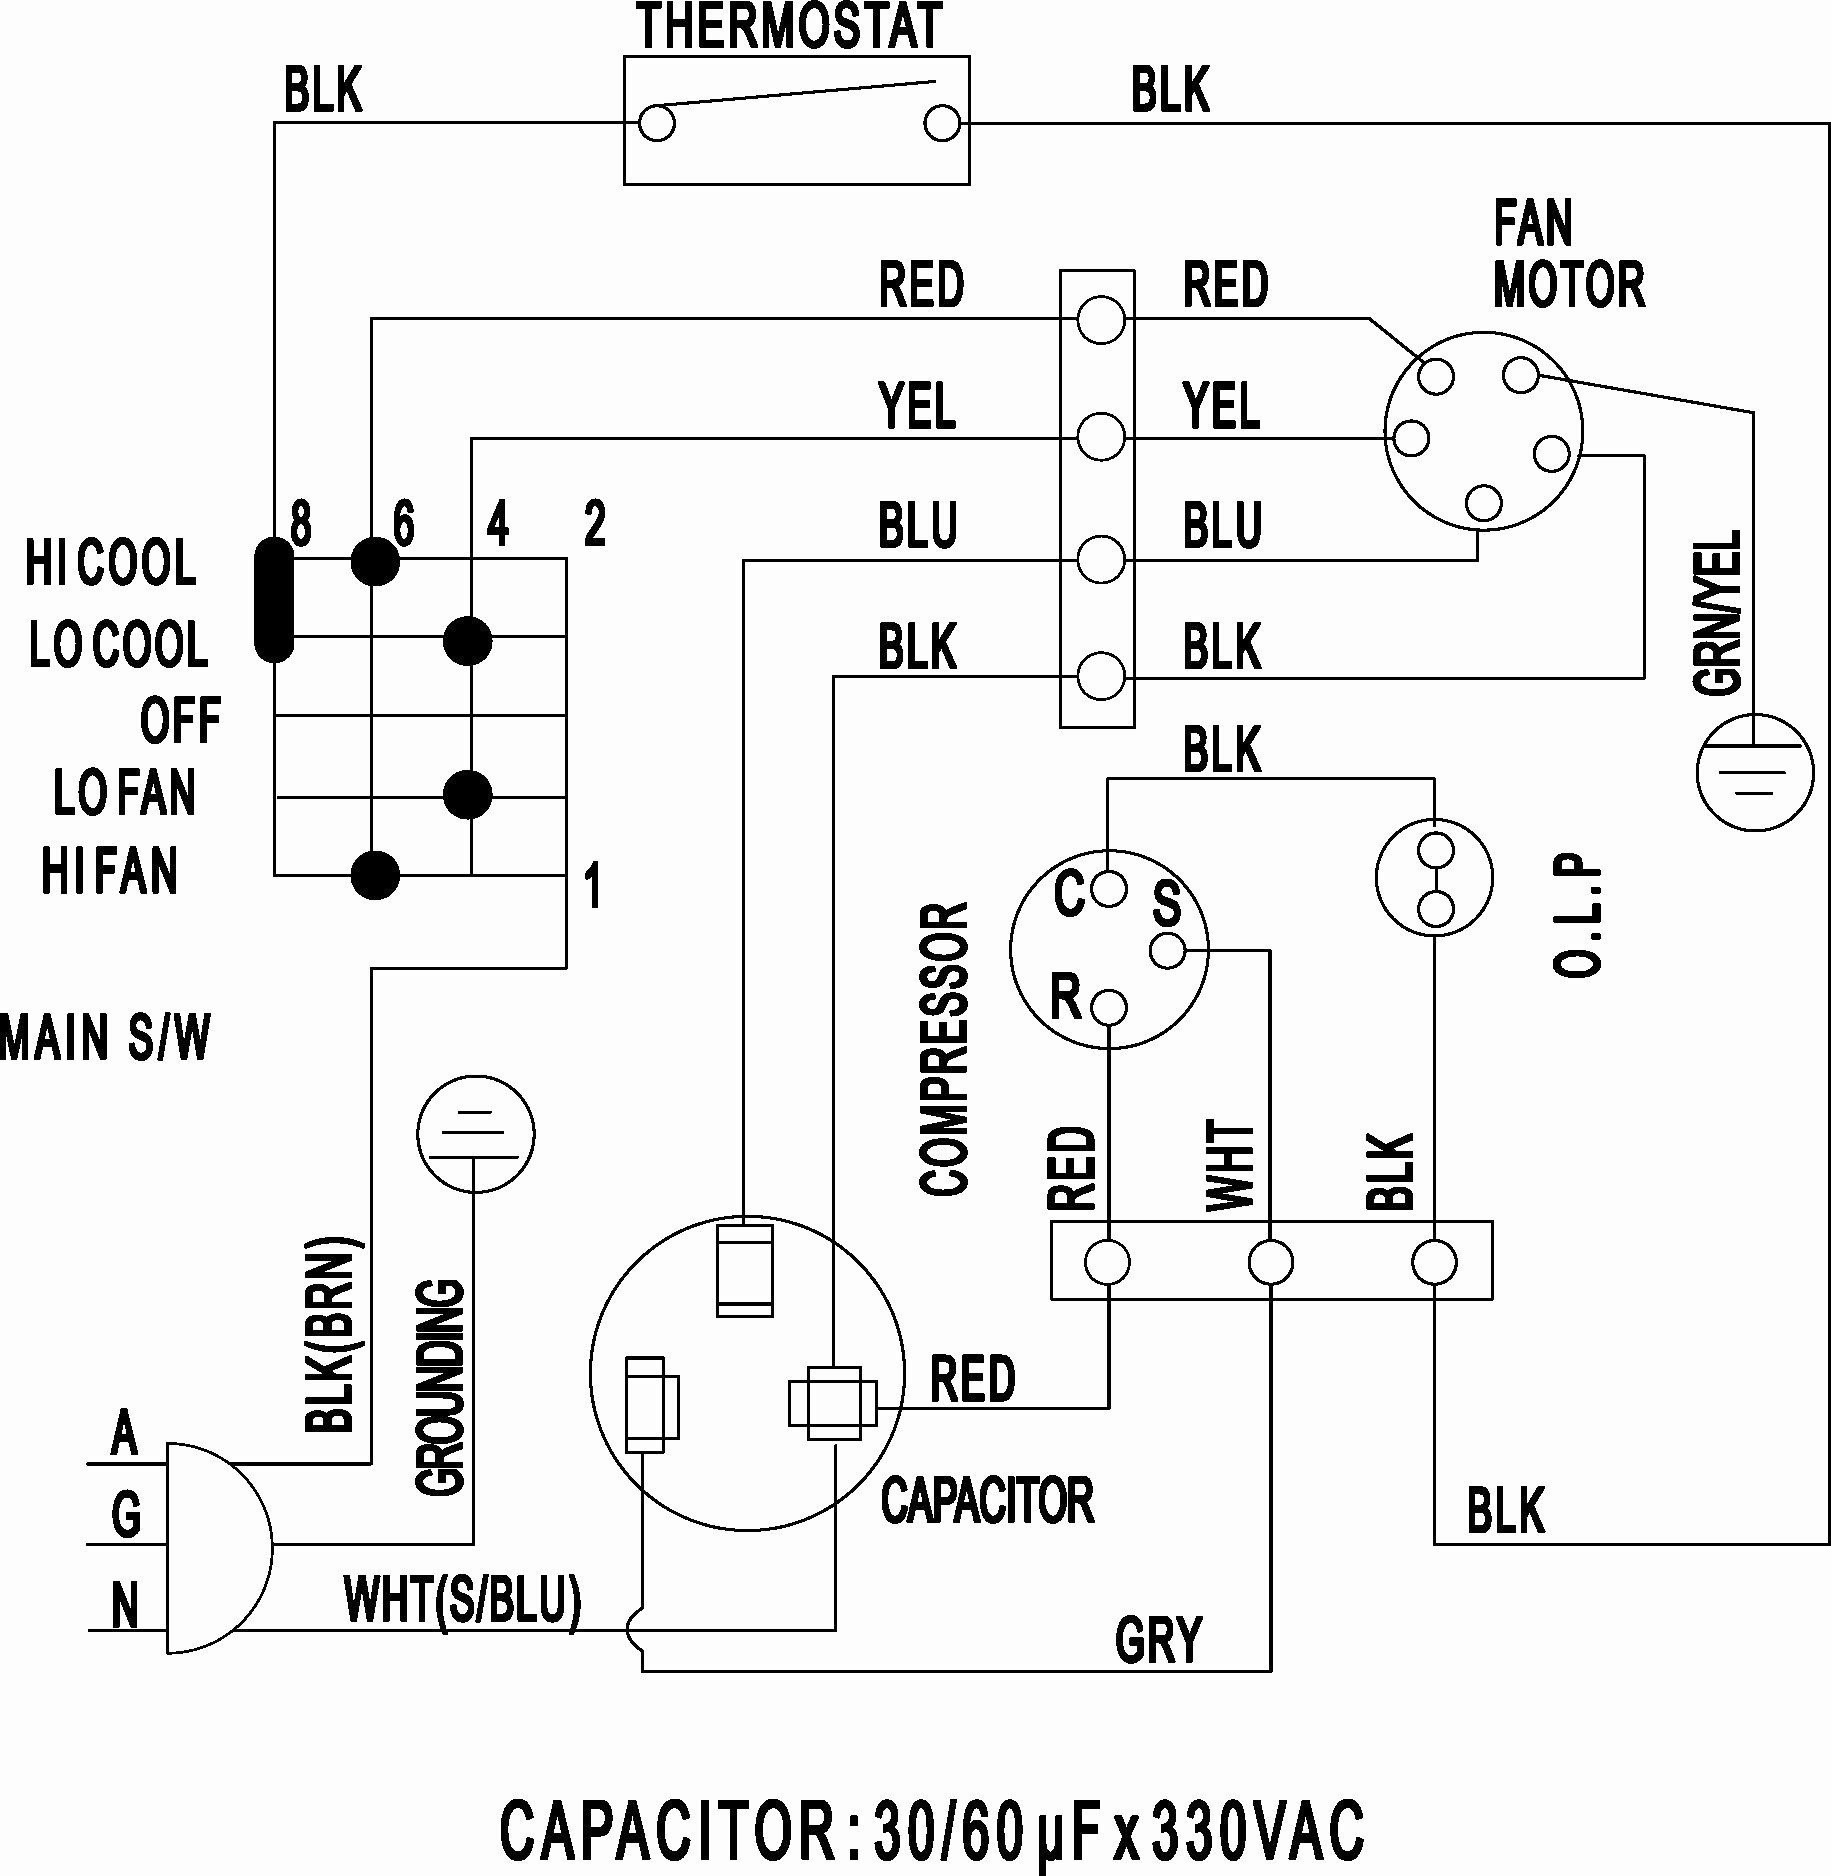 Carrier Split Type Wiring Diagram | Wiring Diagram Database on haier appliance wiring diagrams, haier heat pump wiring diagrams, haier refrigerator wiring diagram,